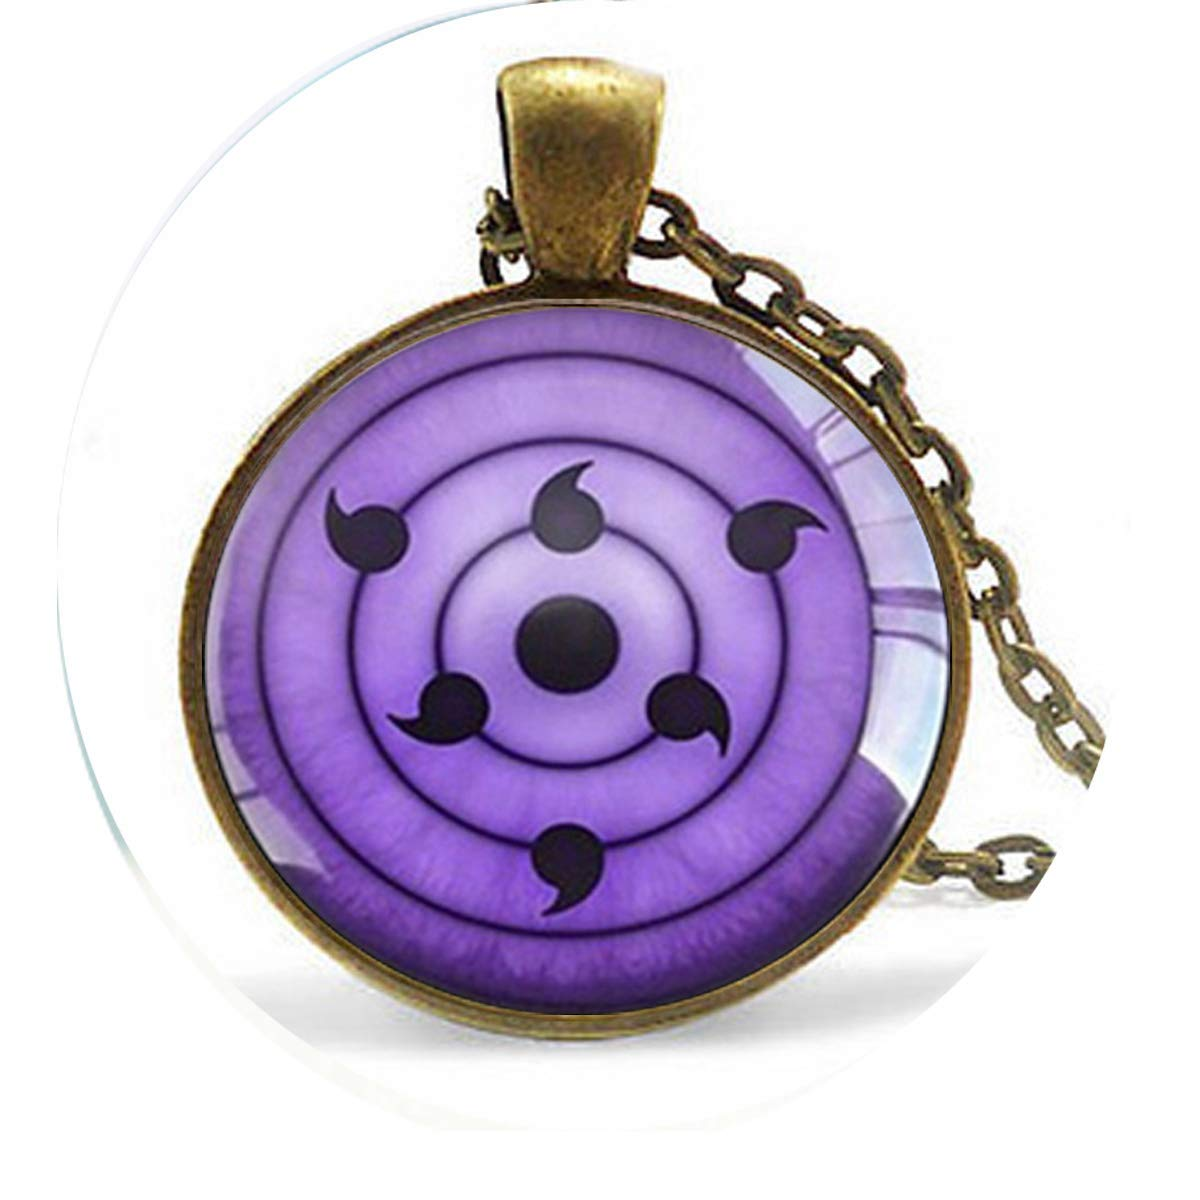 Bohemian Style Long Chain Necklace Rinnegan Eyes Naruto Pendant Glass Dome Necklace Literary Jewelry